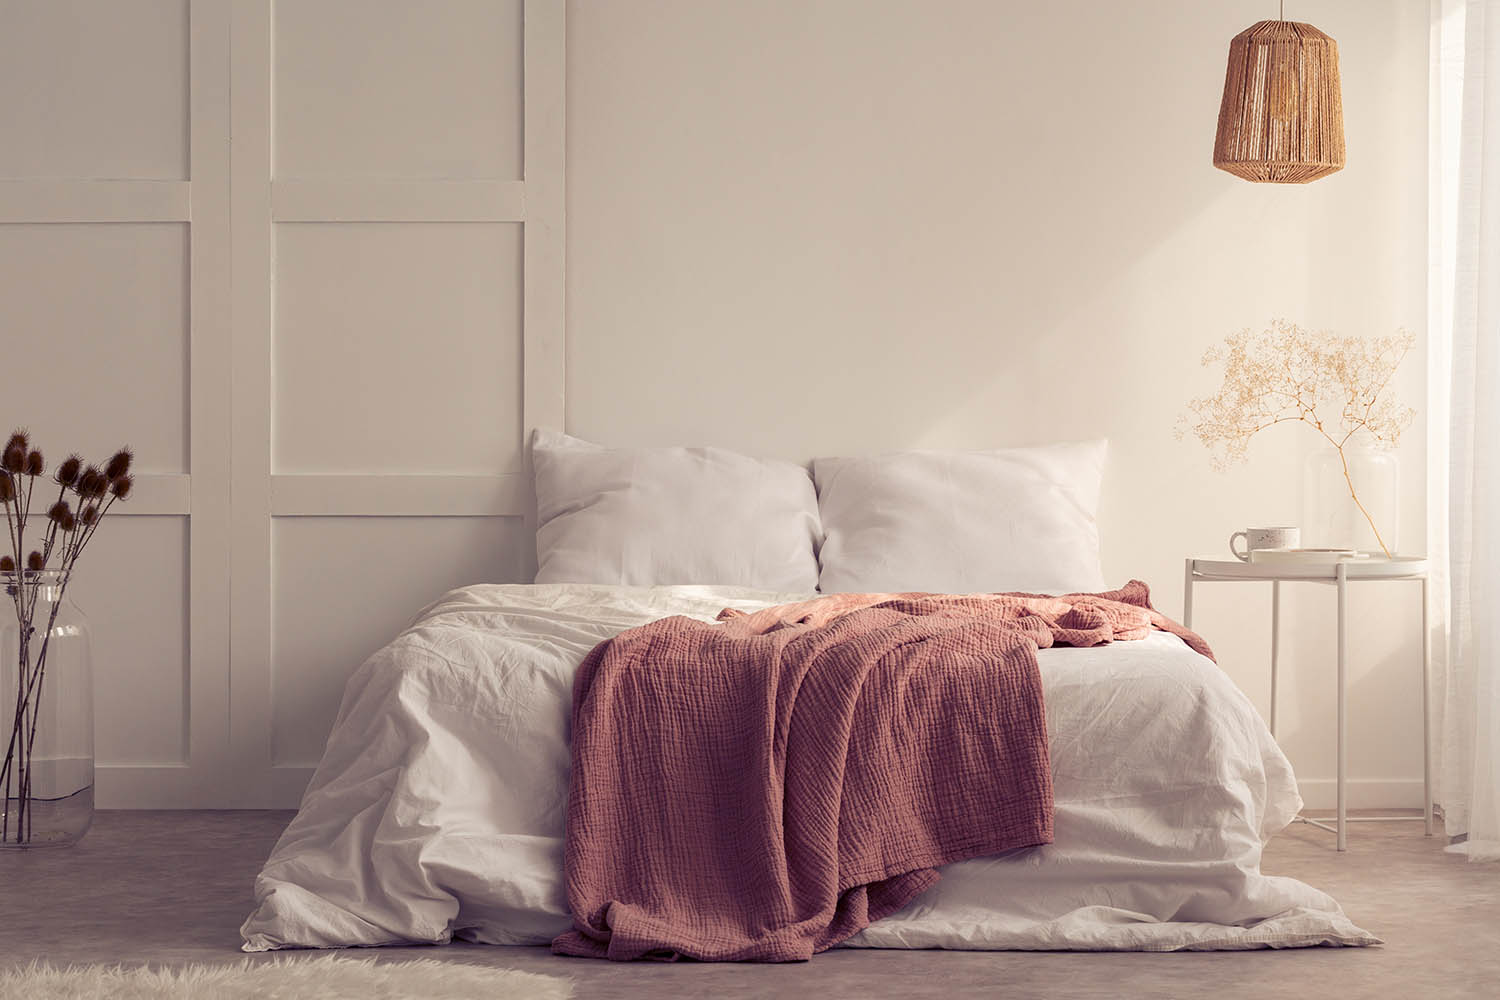 Wie Oft Wechselt Man Die Bettwäsche The Benefits Of Sleeping On Linen Sheets: Why You Need